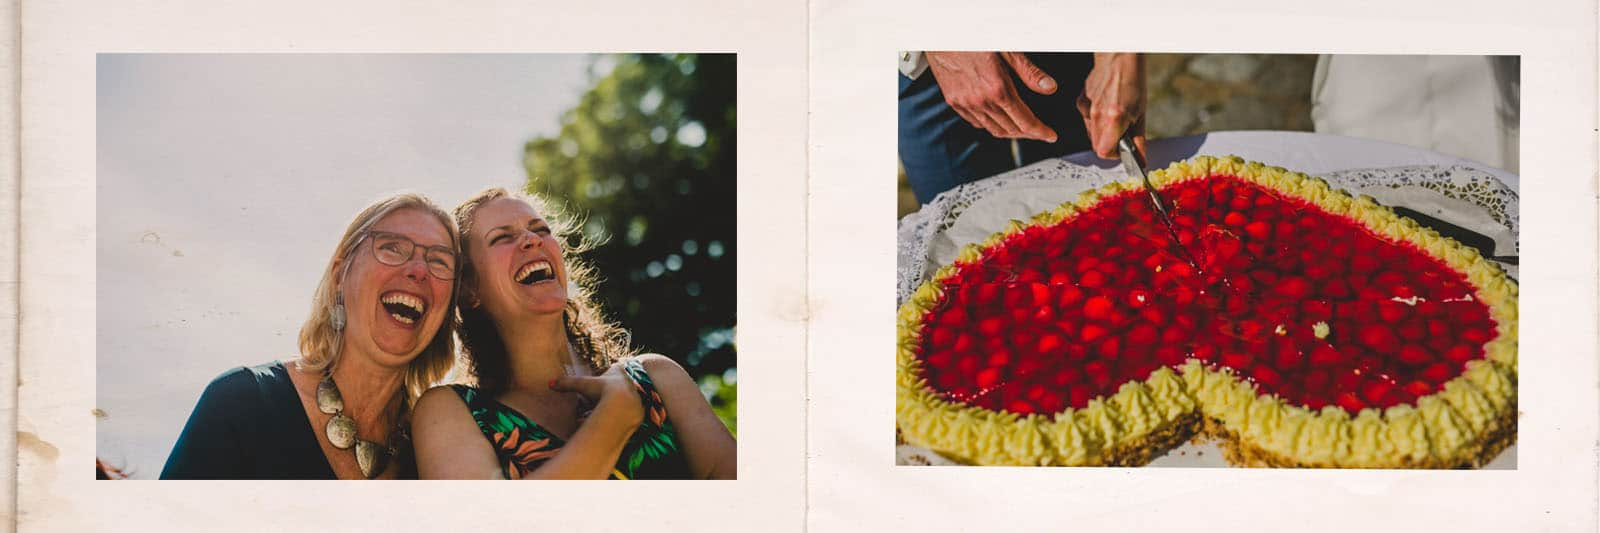 guests and cake in a berlin wedding